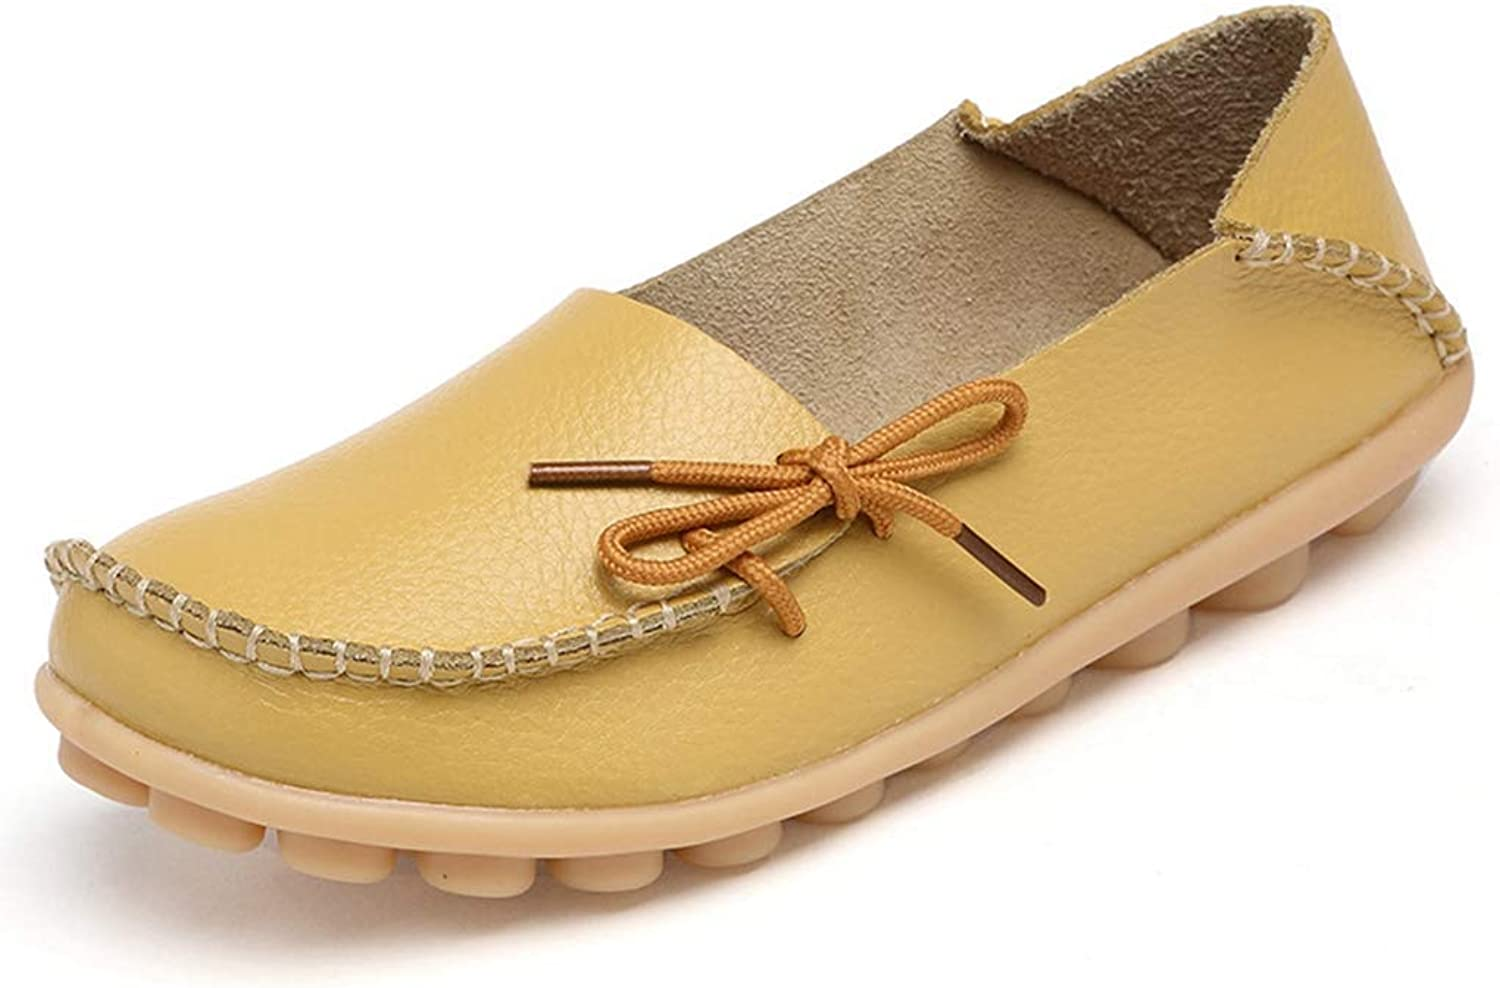 Elsa Wilcox Women Comfortable Ladies Round Toe Casual Moccasins Wild Breathable Slip-On Driving Flats shoes Leather Loafers shoes